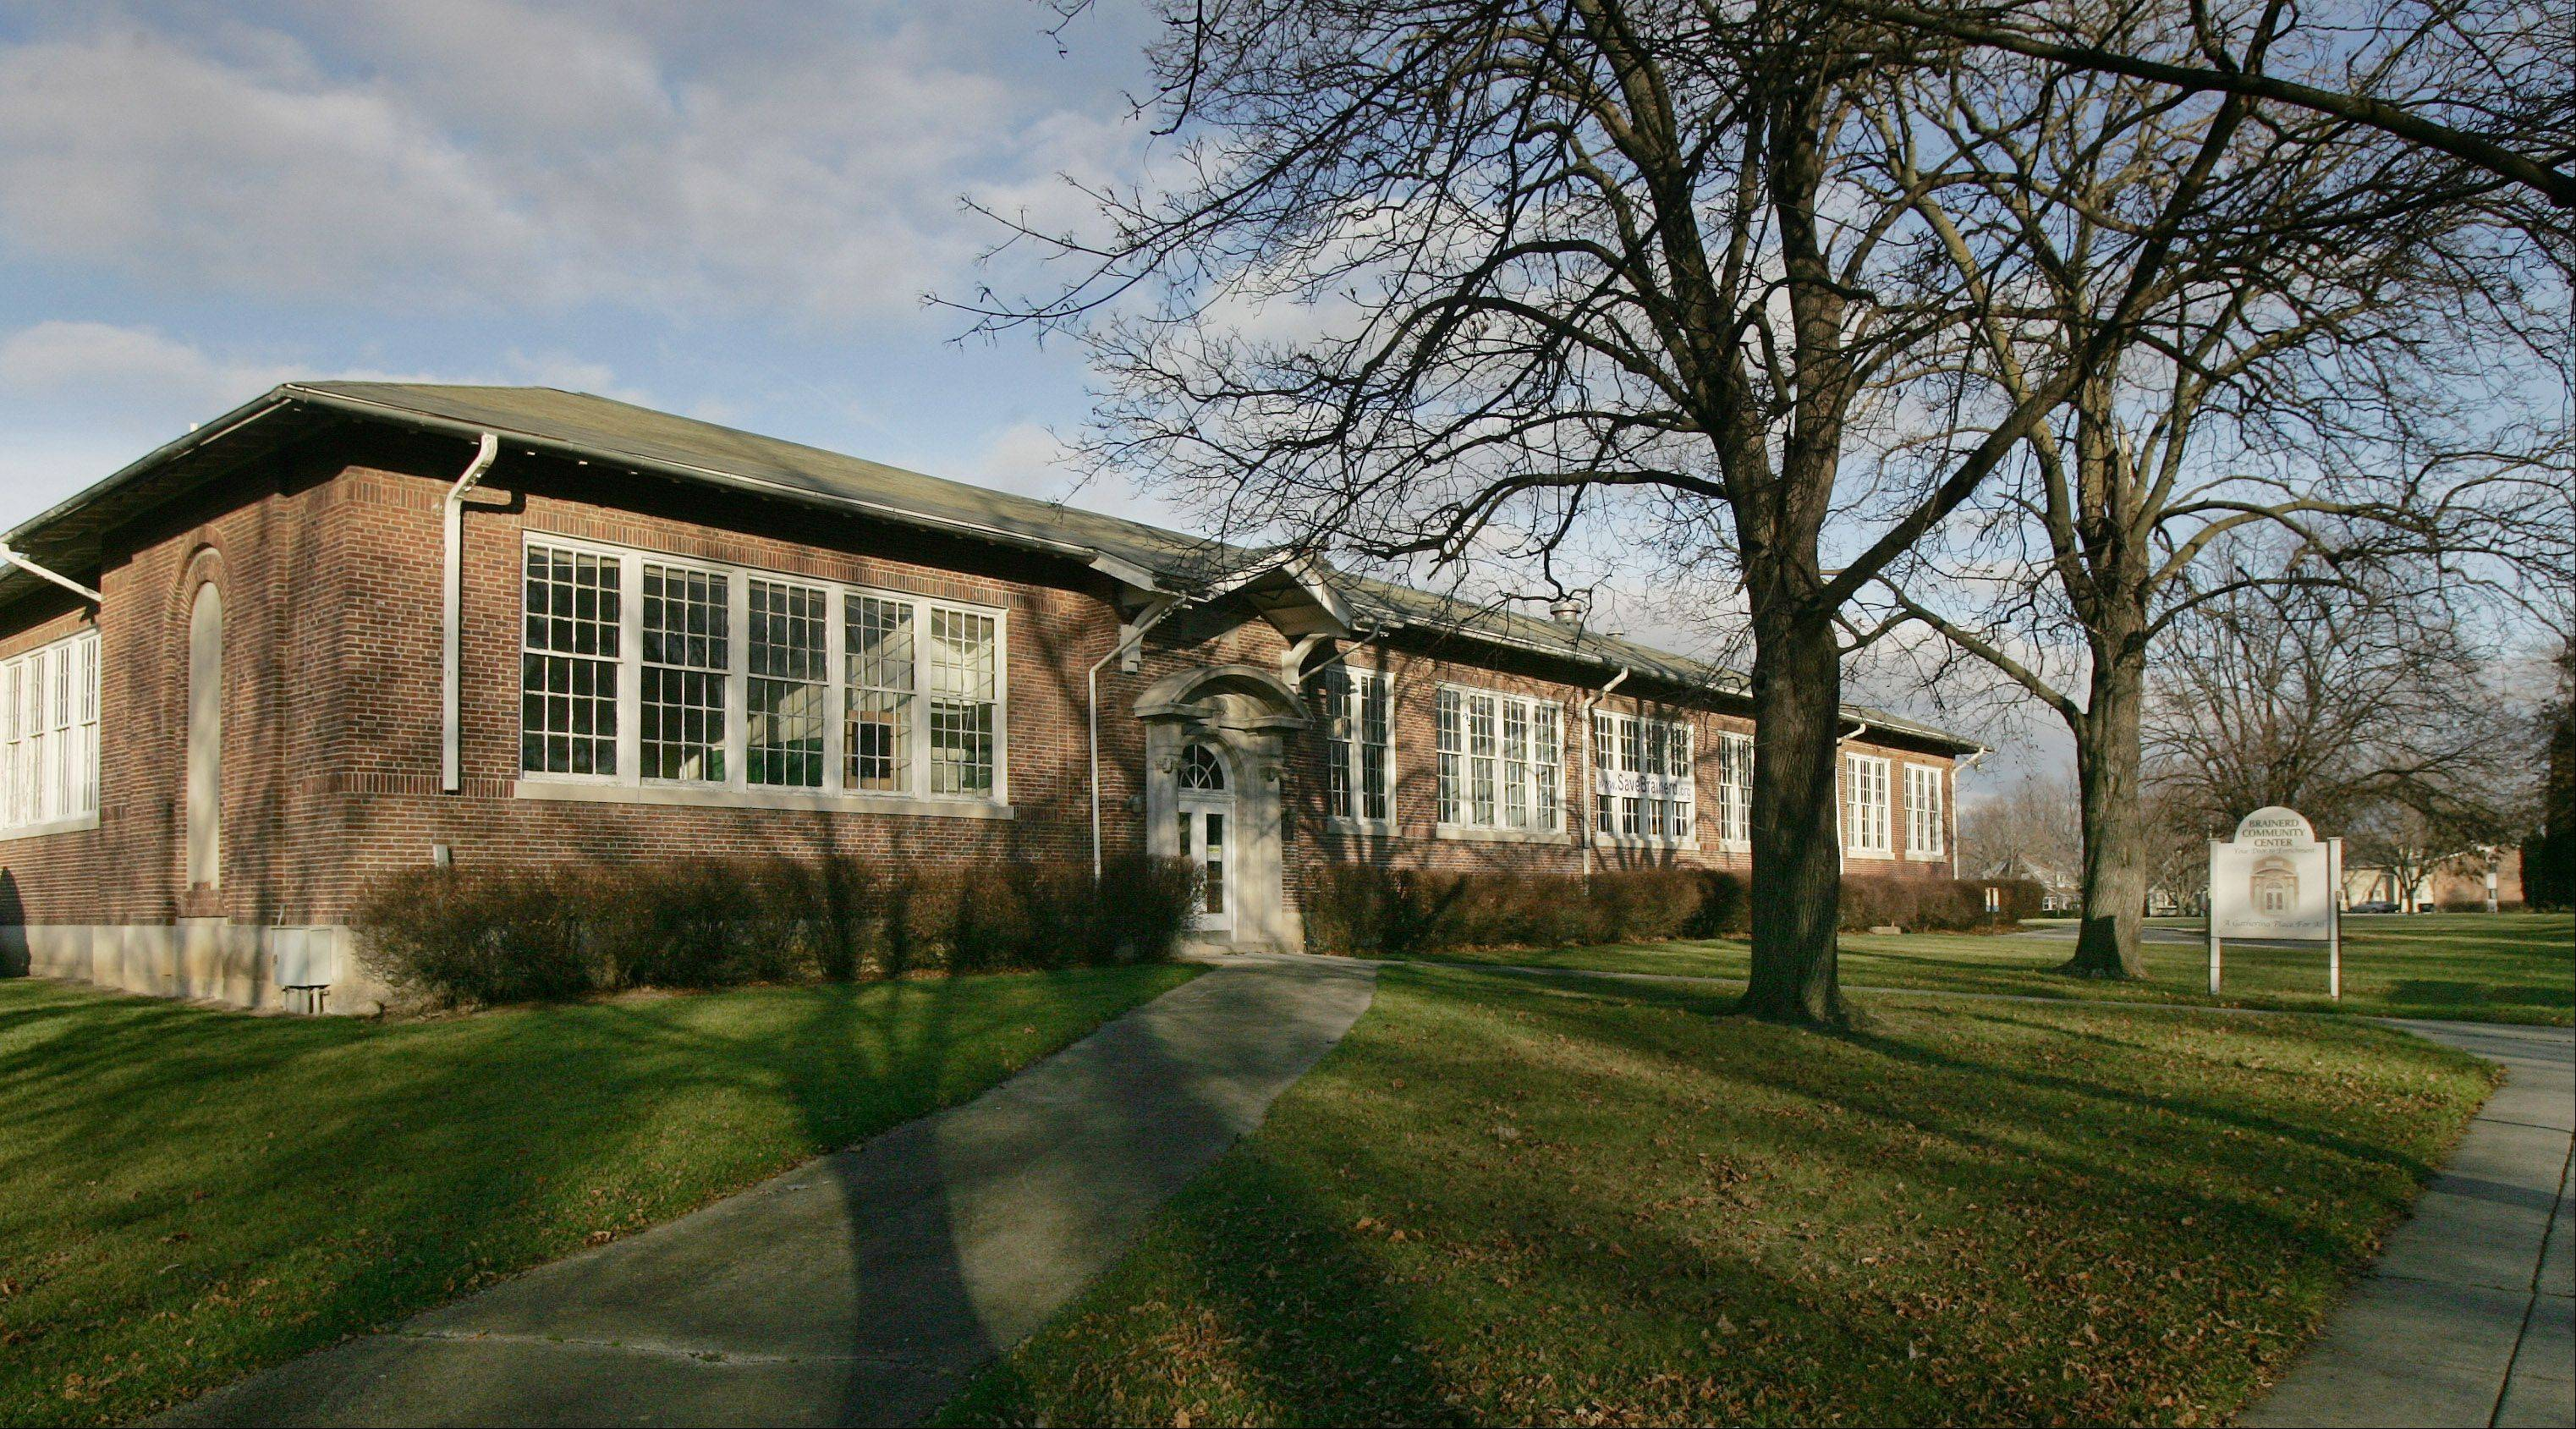 The Brainerd building south of downtown Libertyville was built in 1916 as the first high school in central Lake County. Fundraising efforts to convert the shuttered building into a community center have fallen short and voters are expected to be asked if they are willing to support a tax hike to do so.